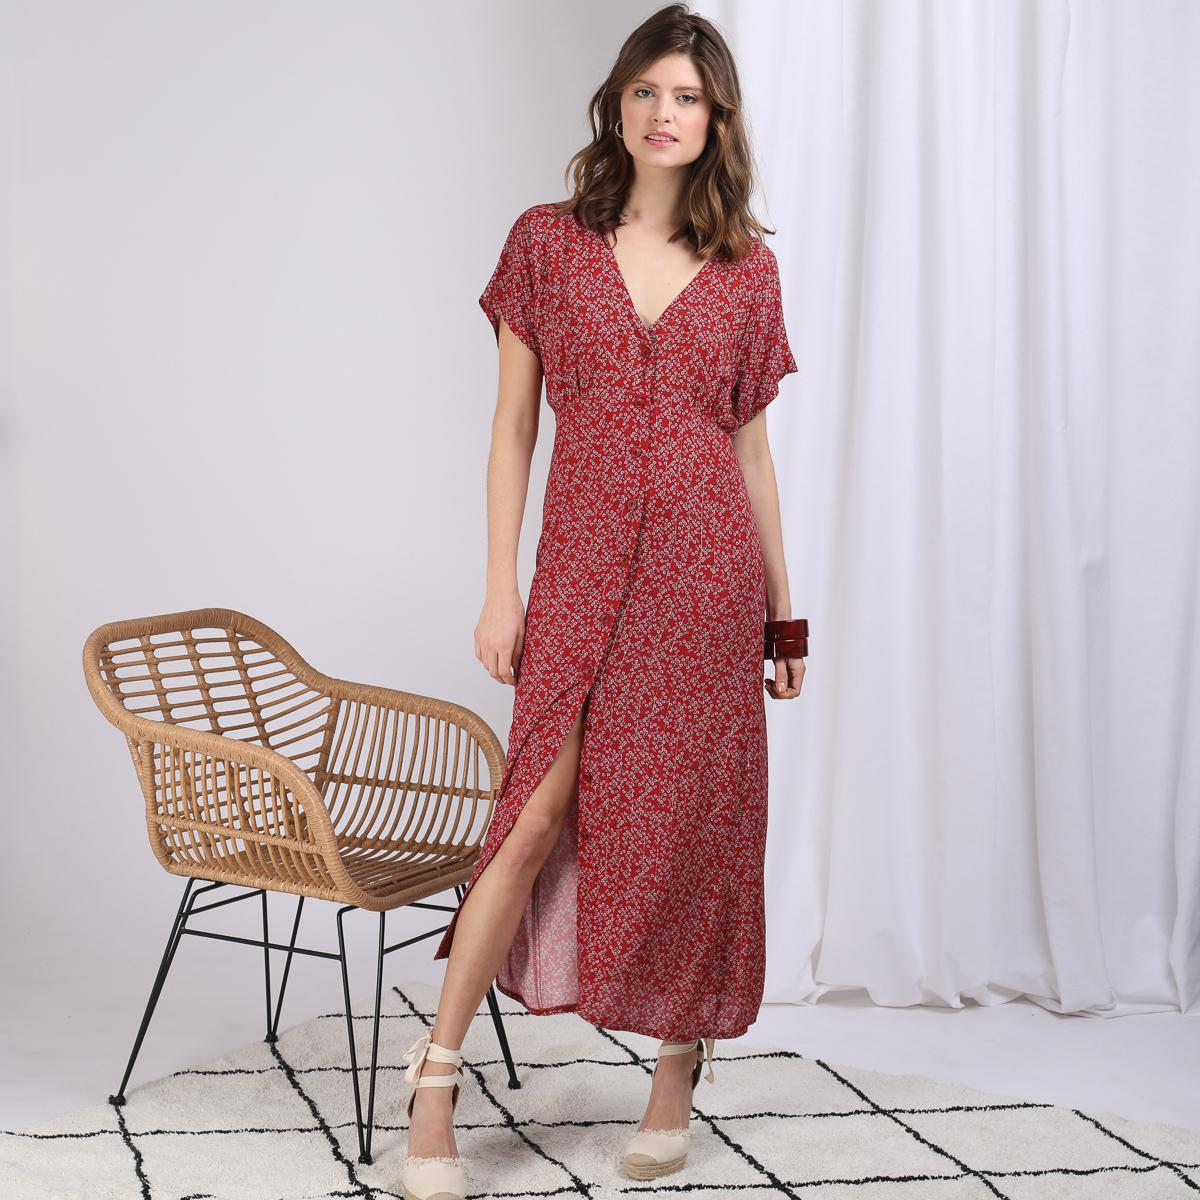 Robe Longue Boutonnee Caly Reedition 3 Suisses